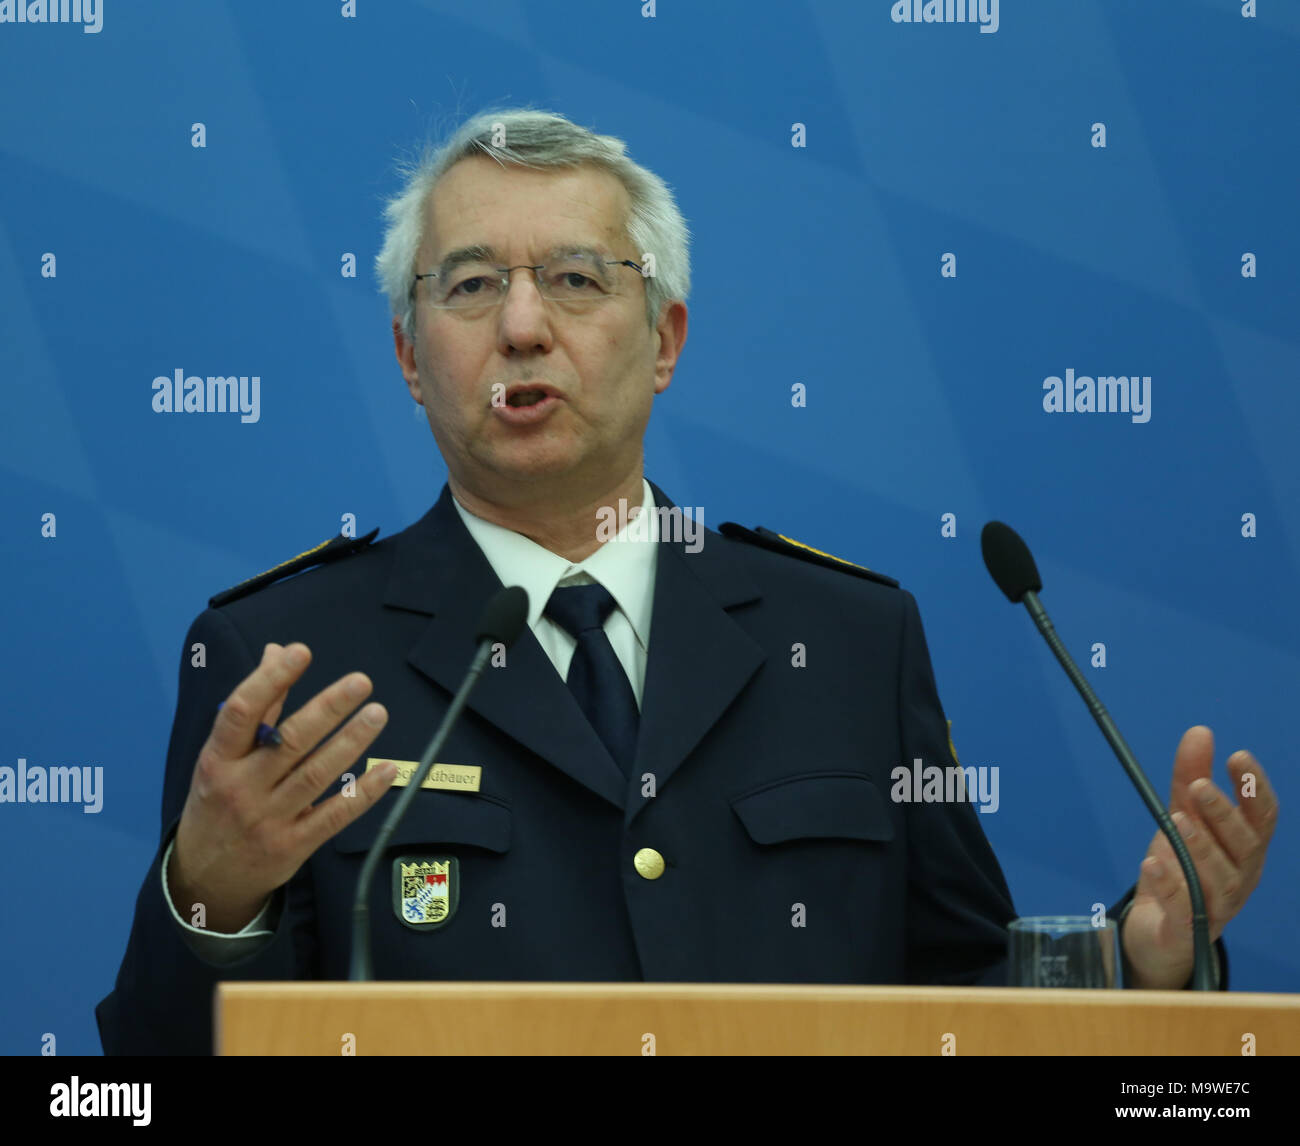 Munich, Germany. 28th Mar, 2018. Wilhelm Schmidbauer. Bavarian Minister of Interiour and Integration Joachim Herrmann of the Christian Social Union (CSU) presented the Bavarian police crime statistics of 2017. Also the president of the Bavarian police Wilhelm Schmidbauer spoke at the press conference. Credit: Alexander Pohl/Pacific Press/Alamy Live News - Stock Image